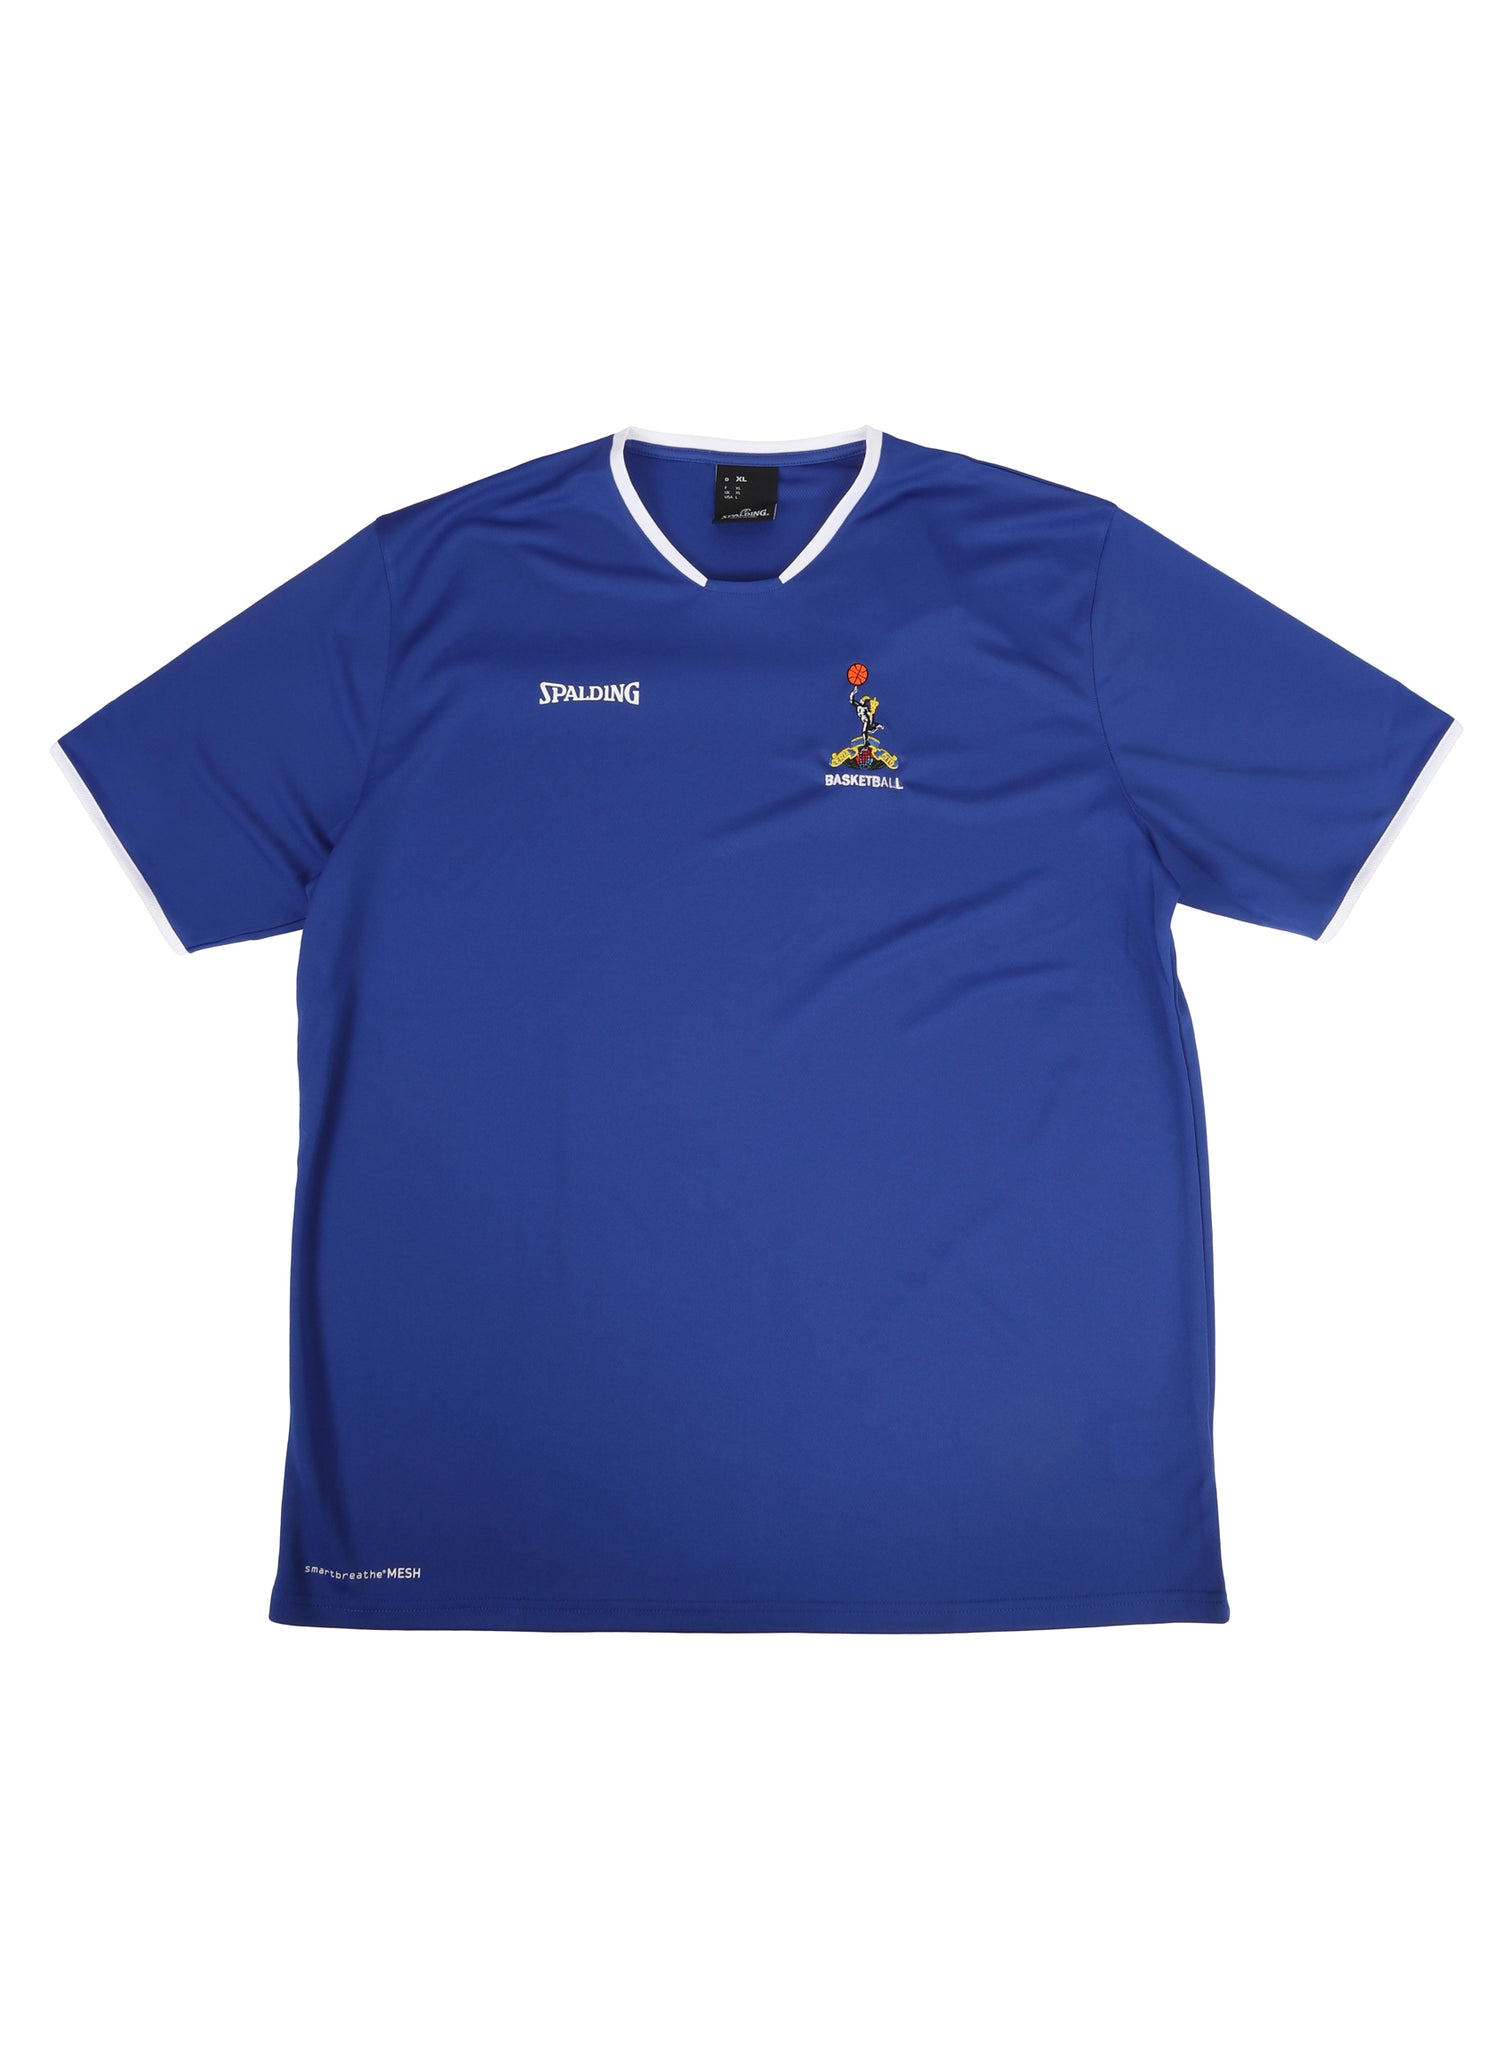 Royal Corps of Signals Warm Up Shirt